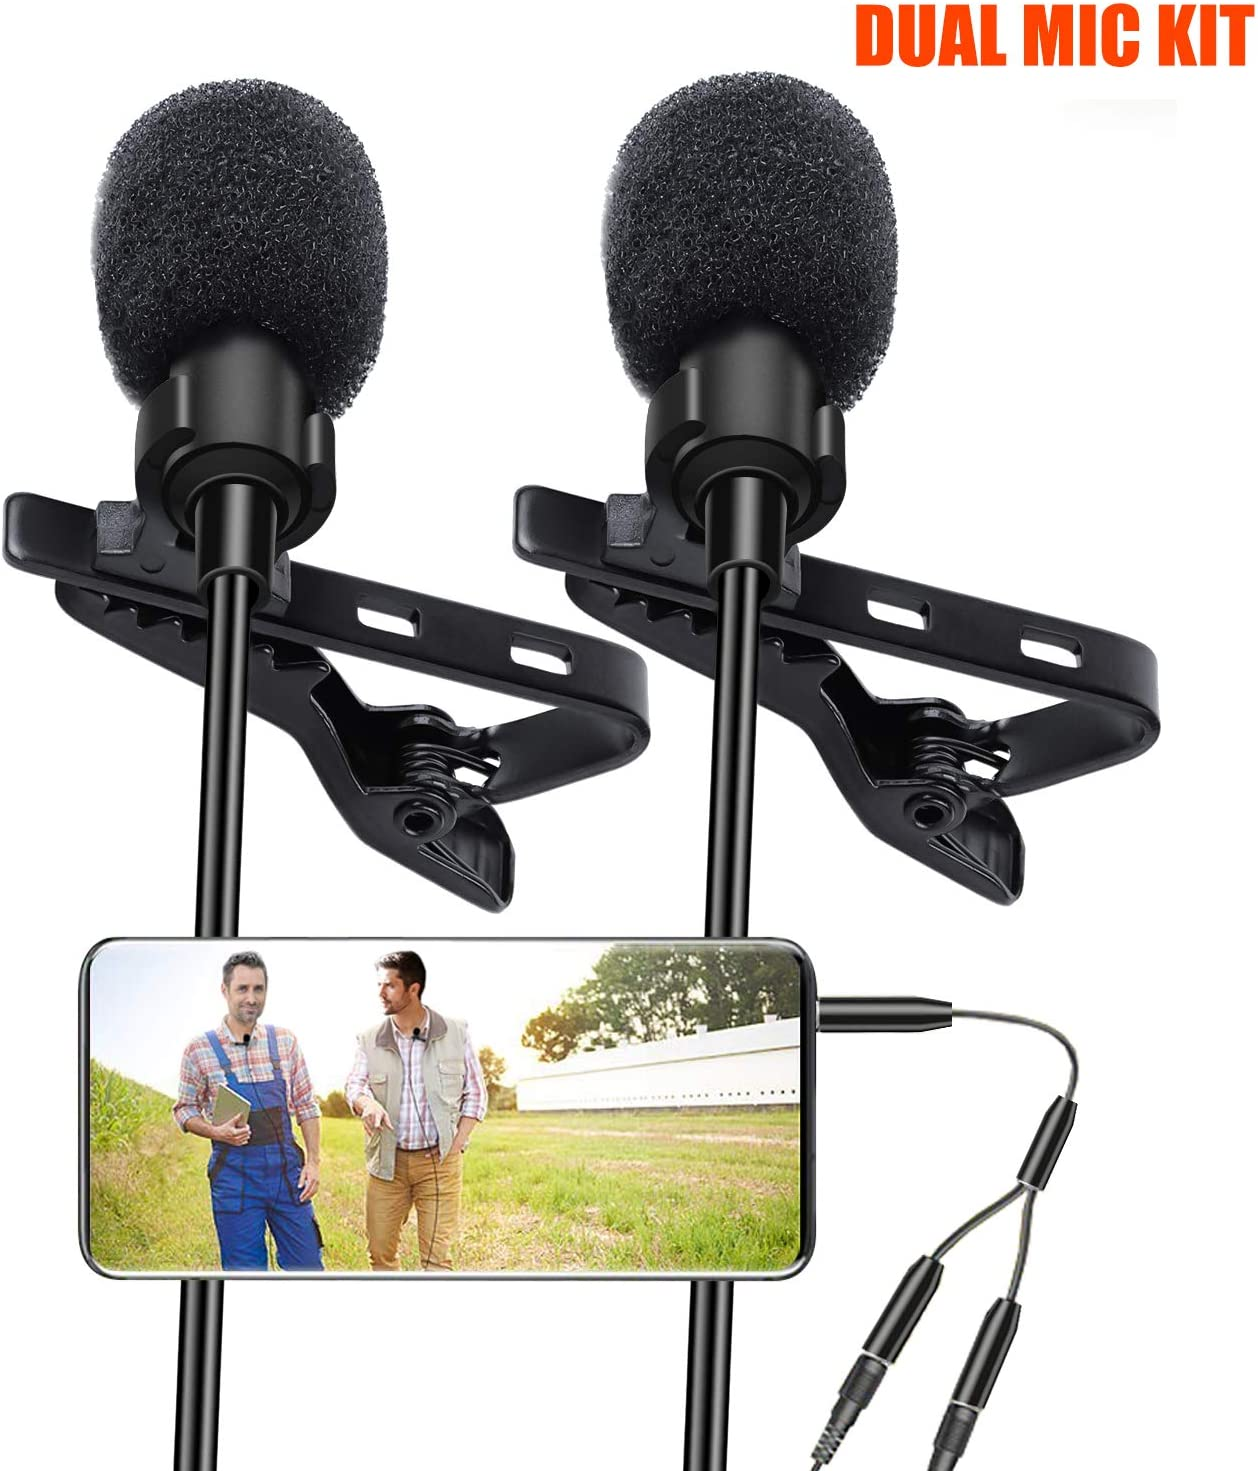 Lavalier Lapel Microphone, Kuyang 2 Pack Omnidirectional Mic for Smartphone, Desktop PC Computer, DSLR, Recording Mic for Podcast, YouTube, Vlogging, and Interview